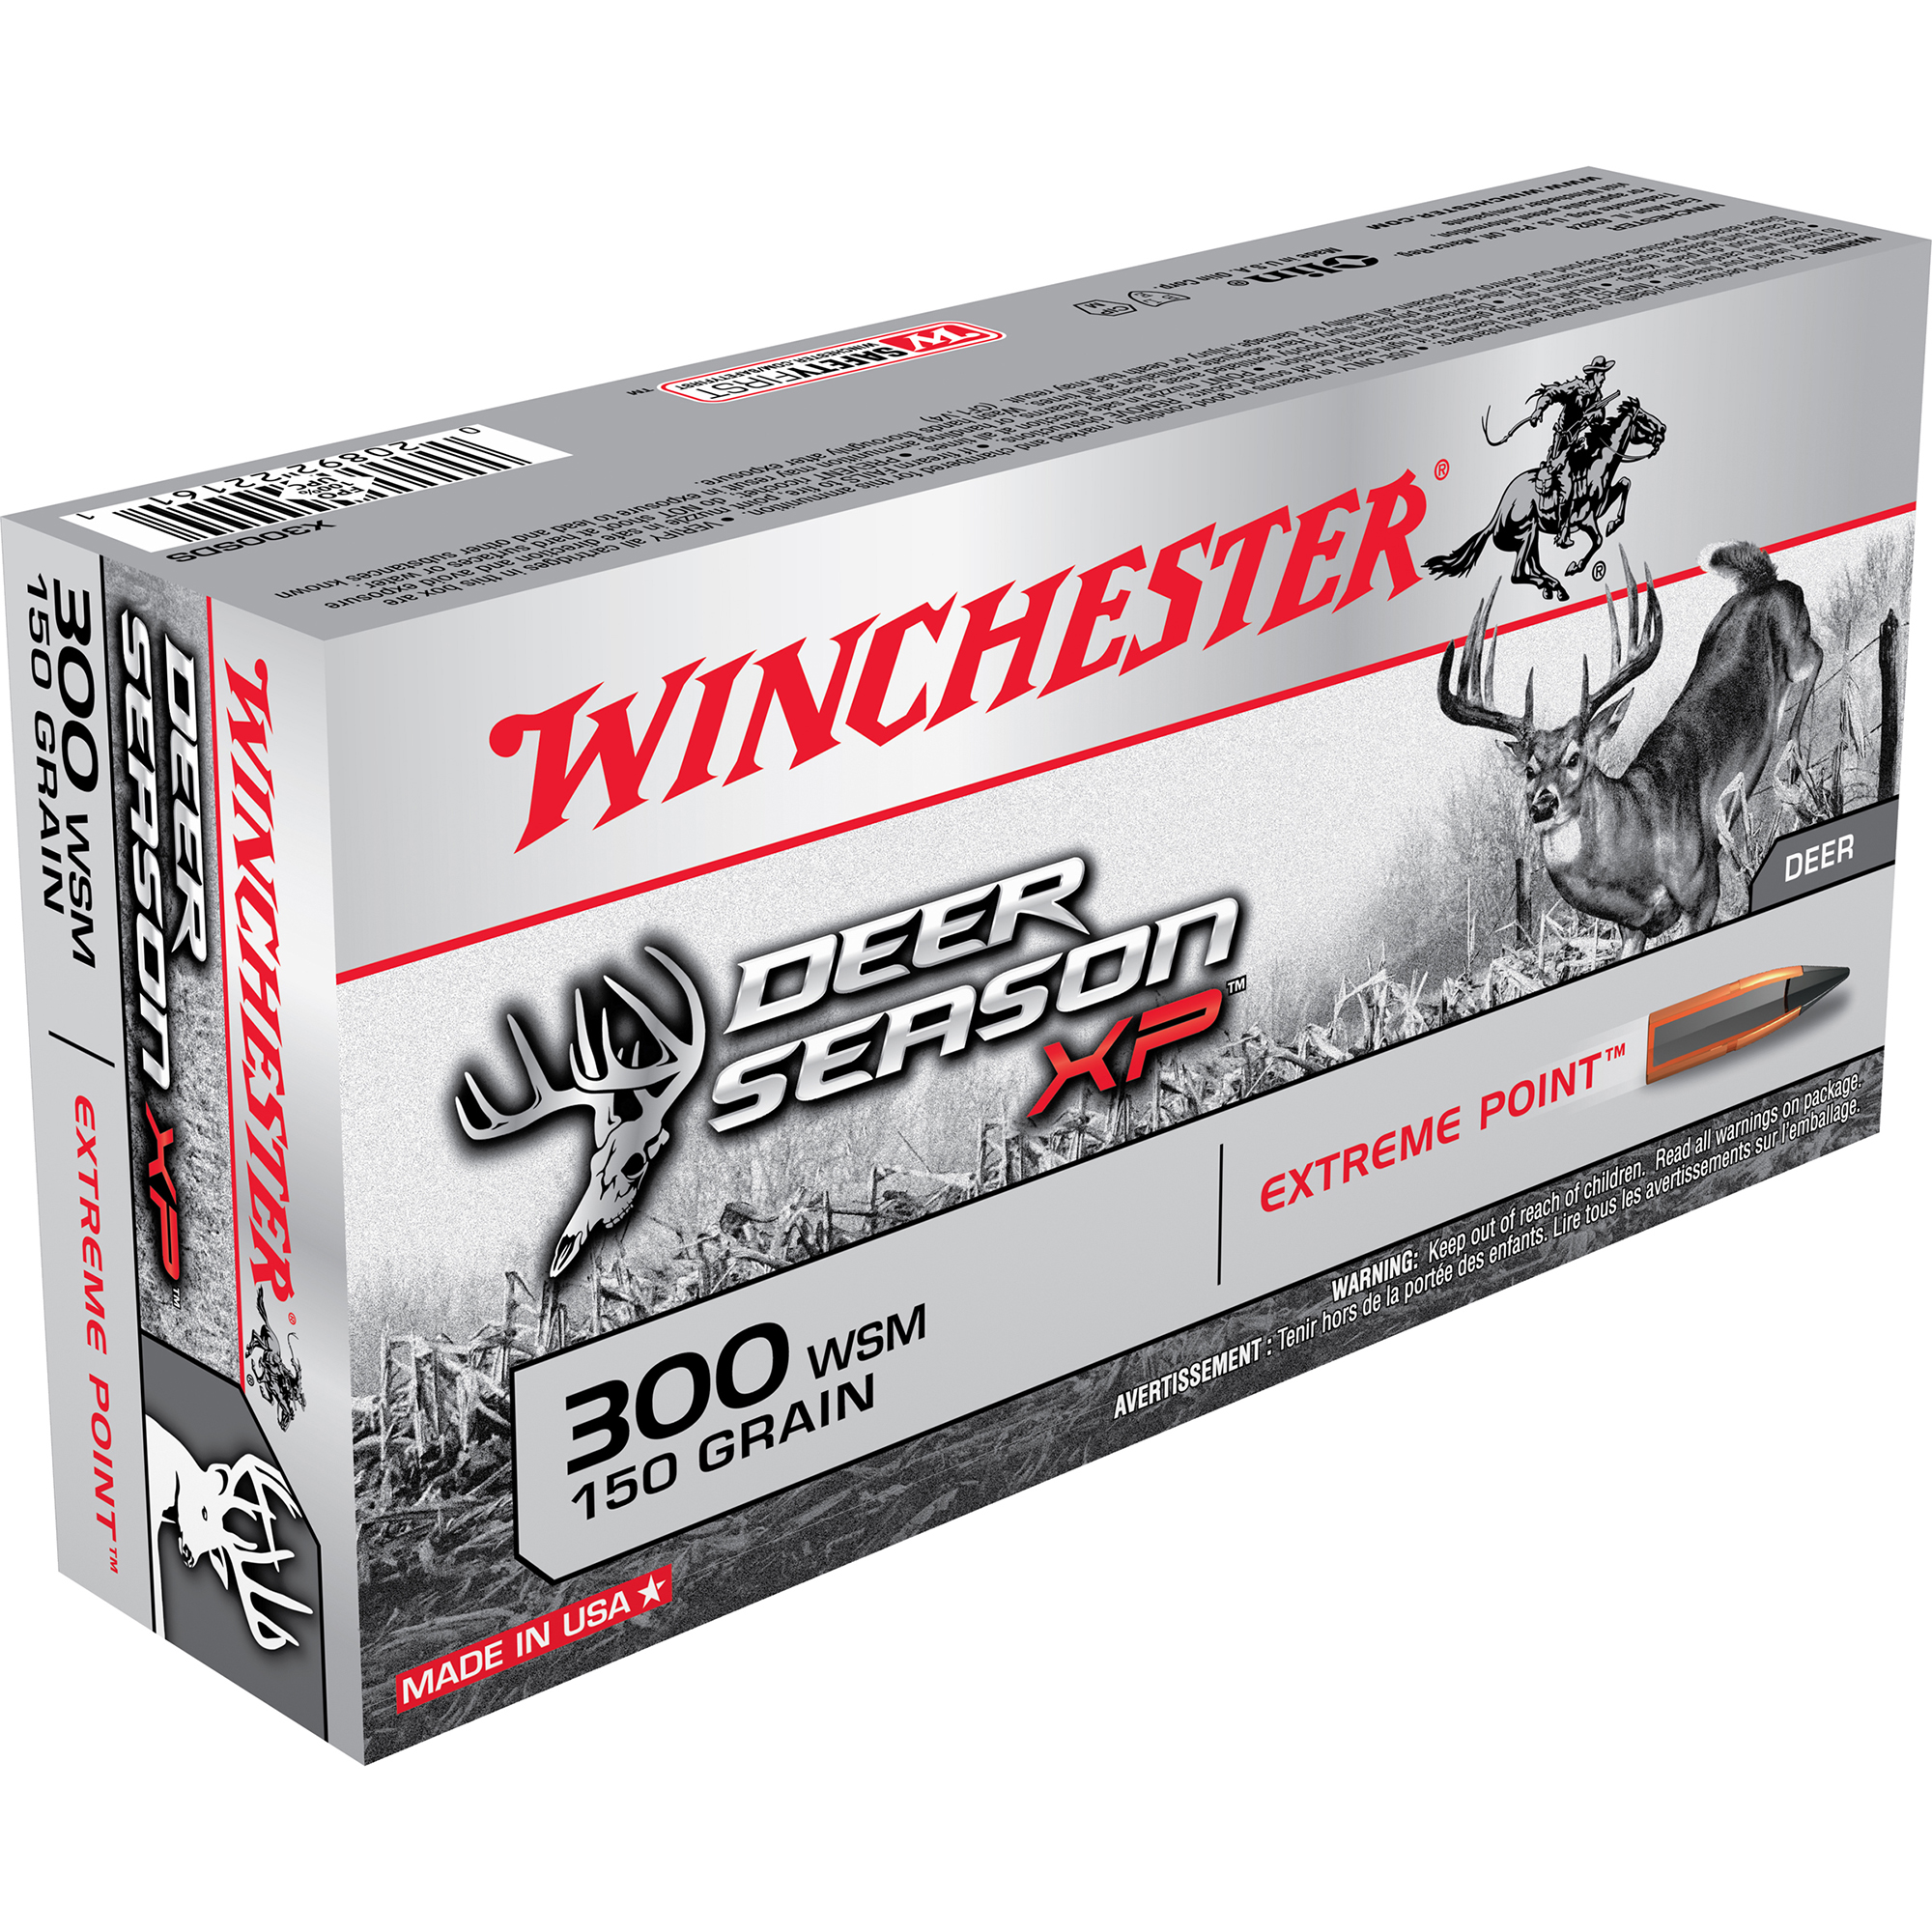 Winchester Deer Season XP Rifle Ammo, .300 WSM, 150-gr, Extreme Point